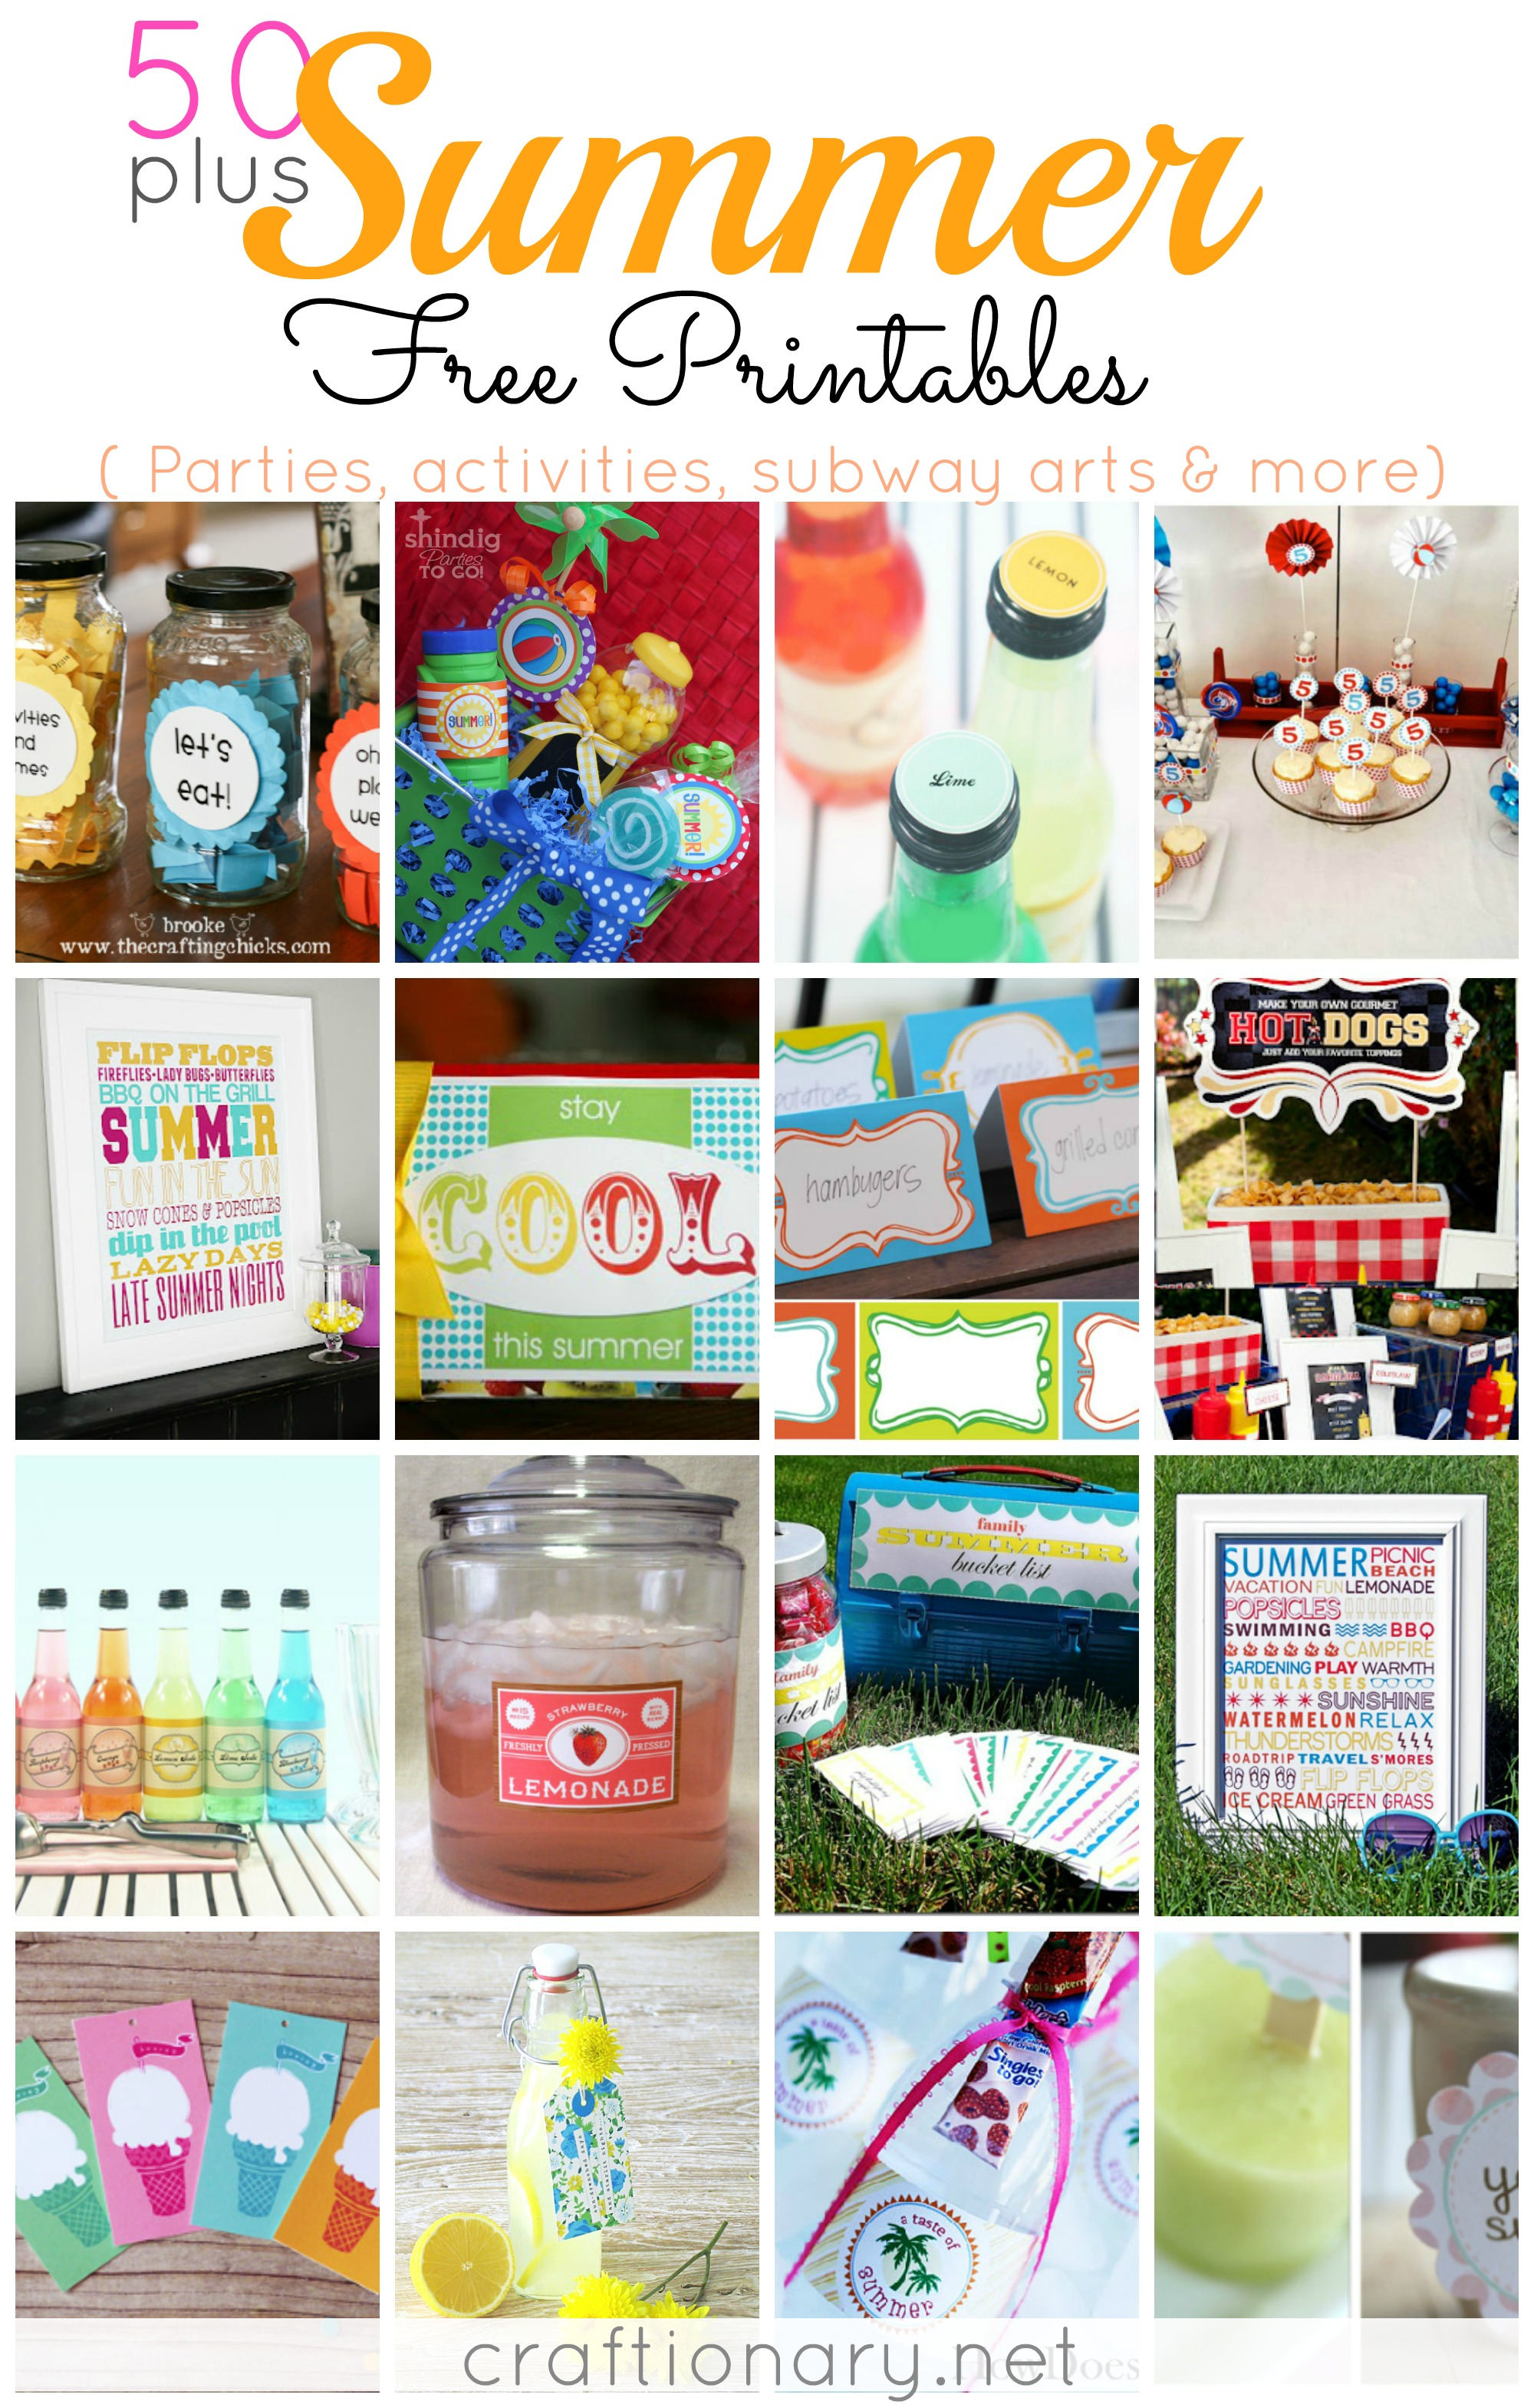 Free Printable Summer Arts and Crafts